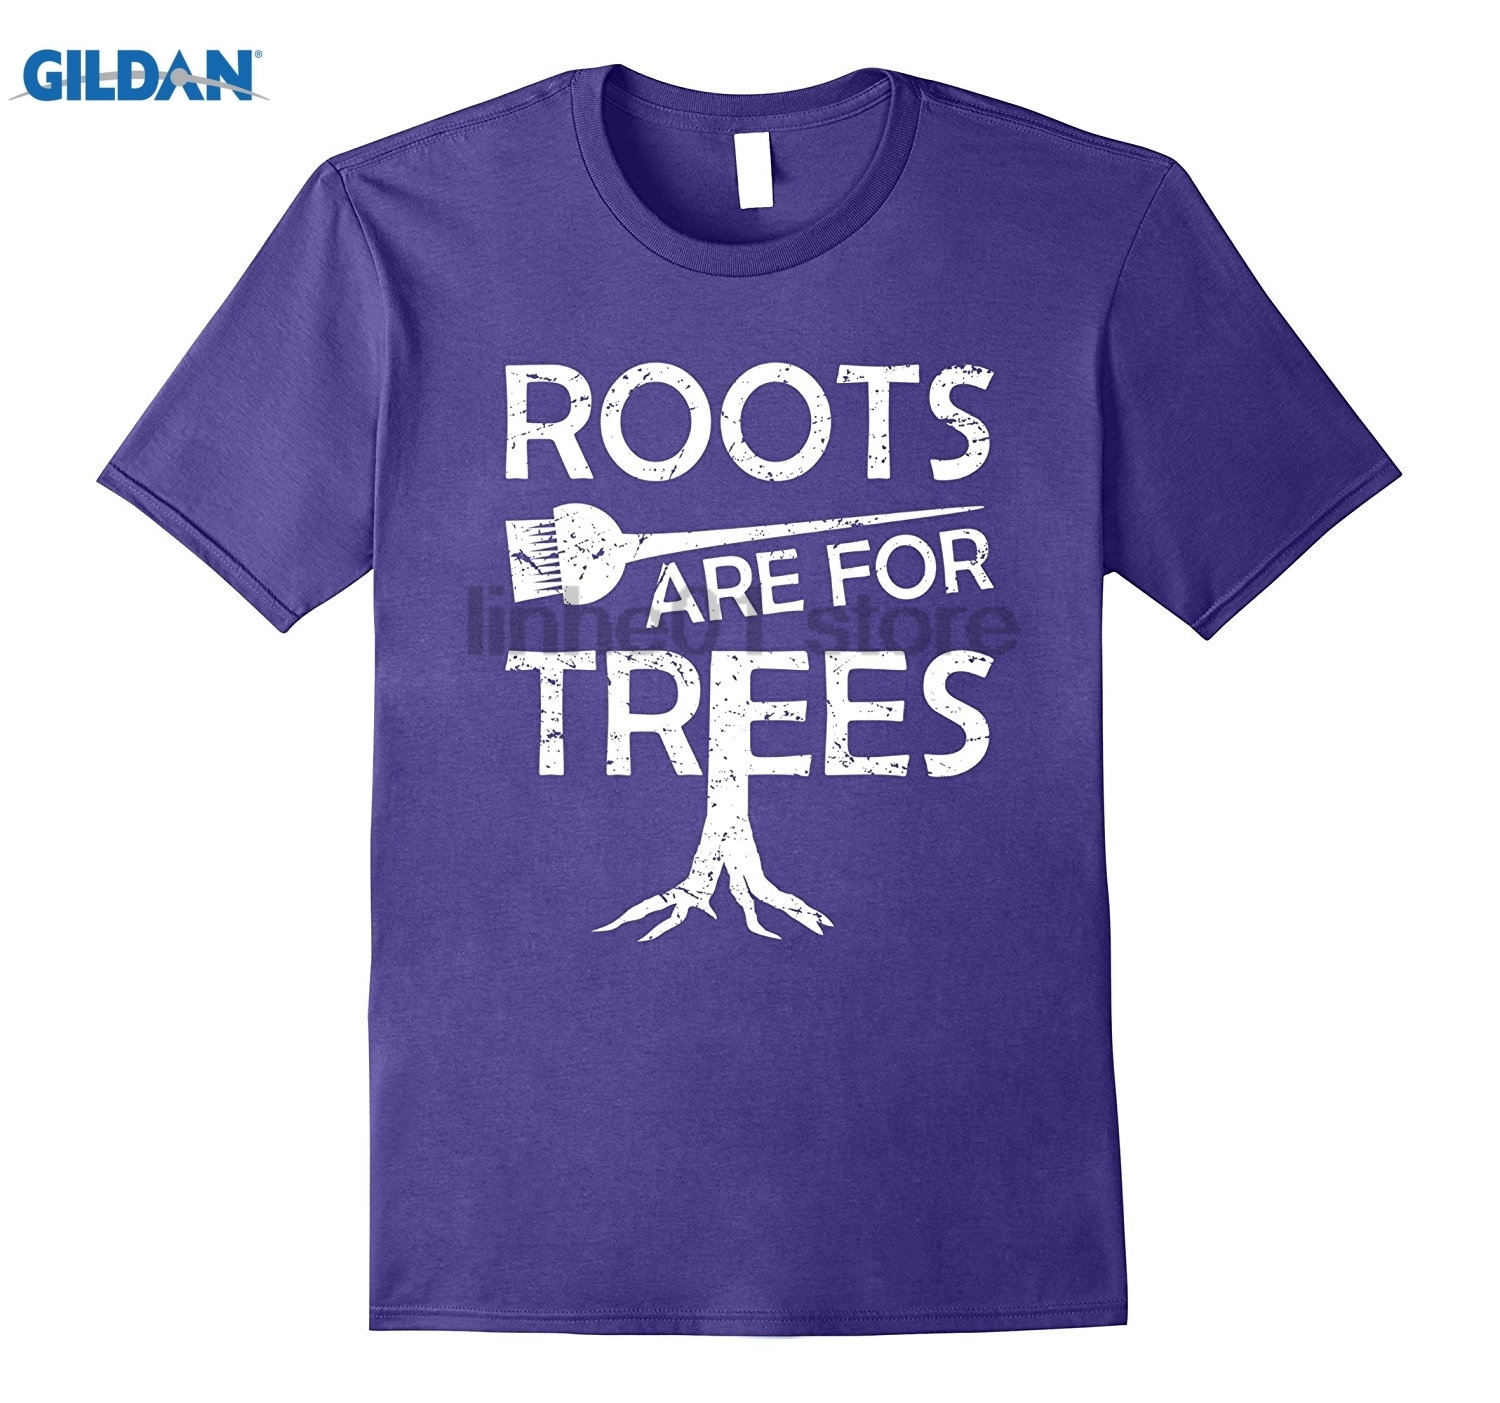 GILDAN Hair Stylist Hairdresser Roots Are For Trees Ladies T-Shirt summer dress T-shirt  ...